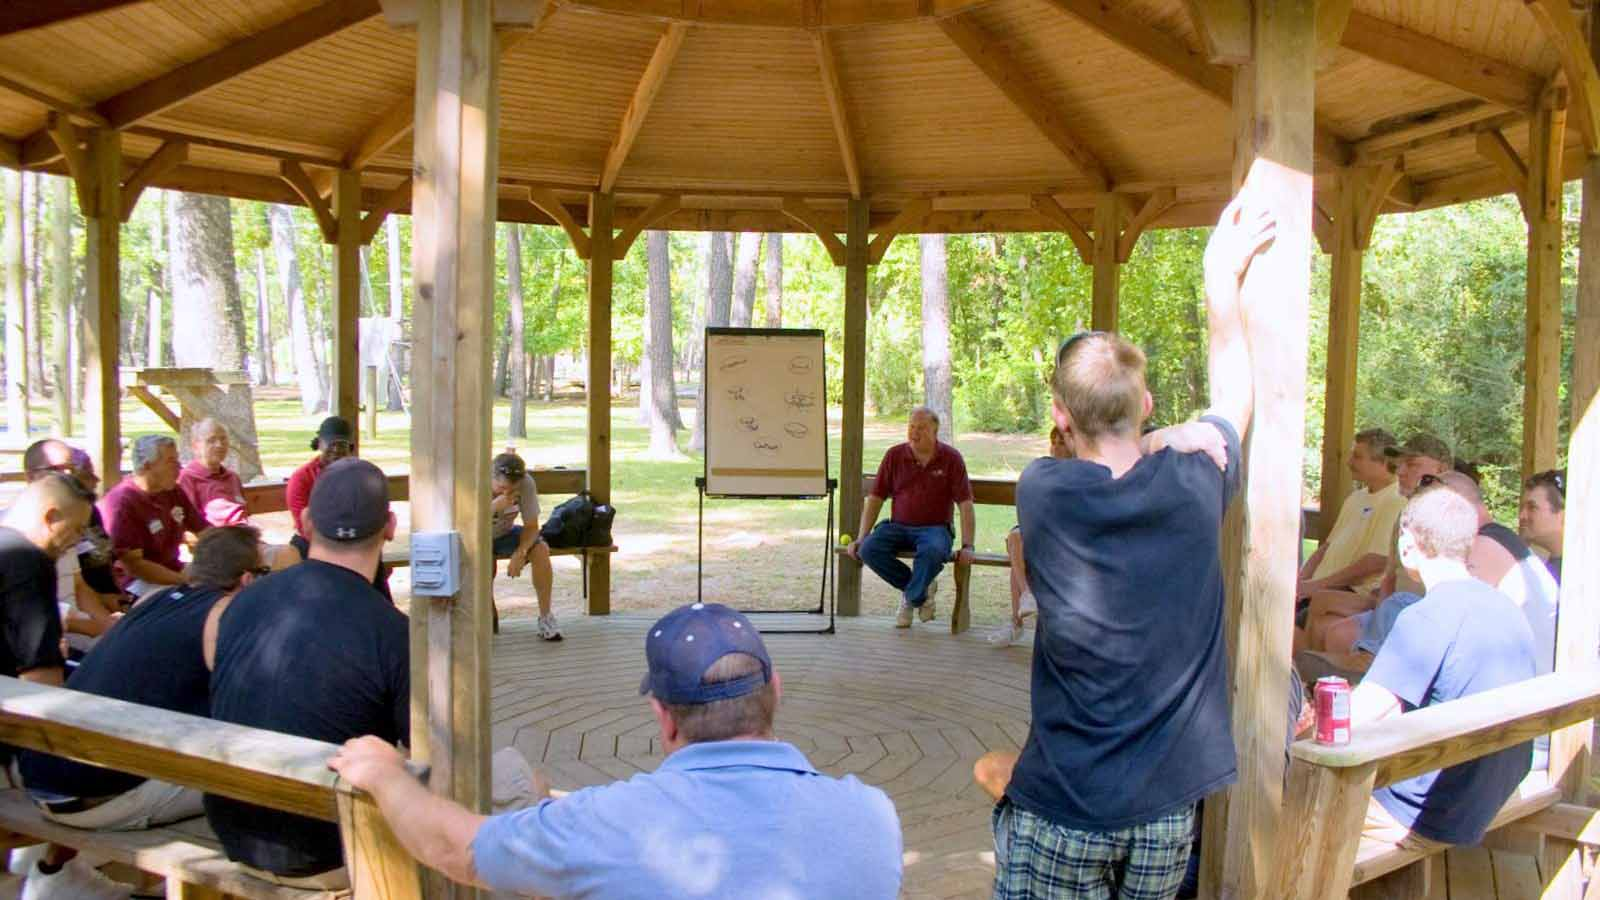 Gazebo meeting space at the Challenge Course